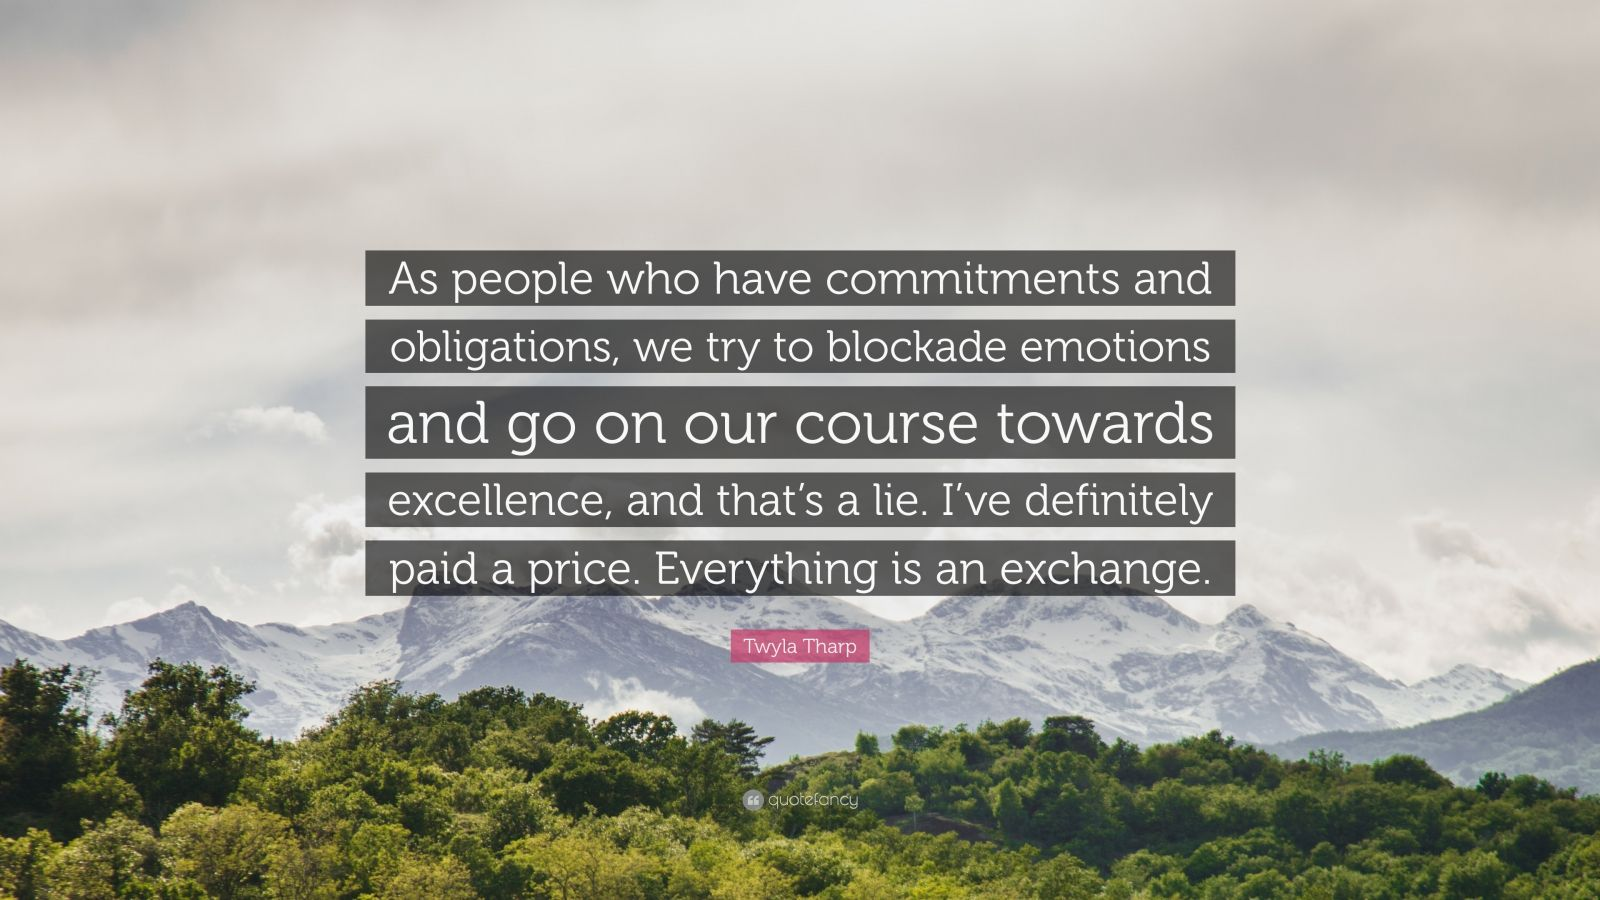 """Twyla Tharp Quote: """"As people who have commitments and obligations, we try to blockade emotions and go on our course towards excellence, and that's a lie. I've definitely paid a price. Everything is an exchange."""""""